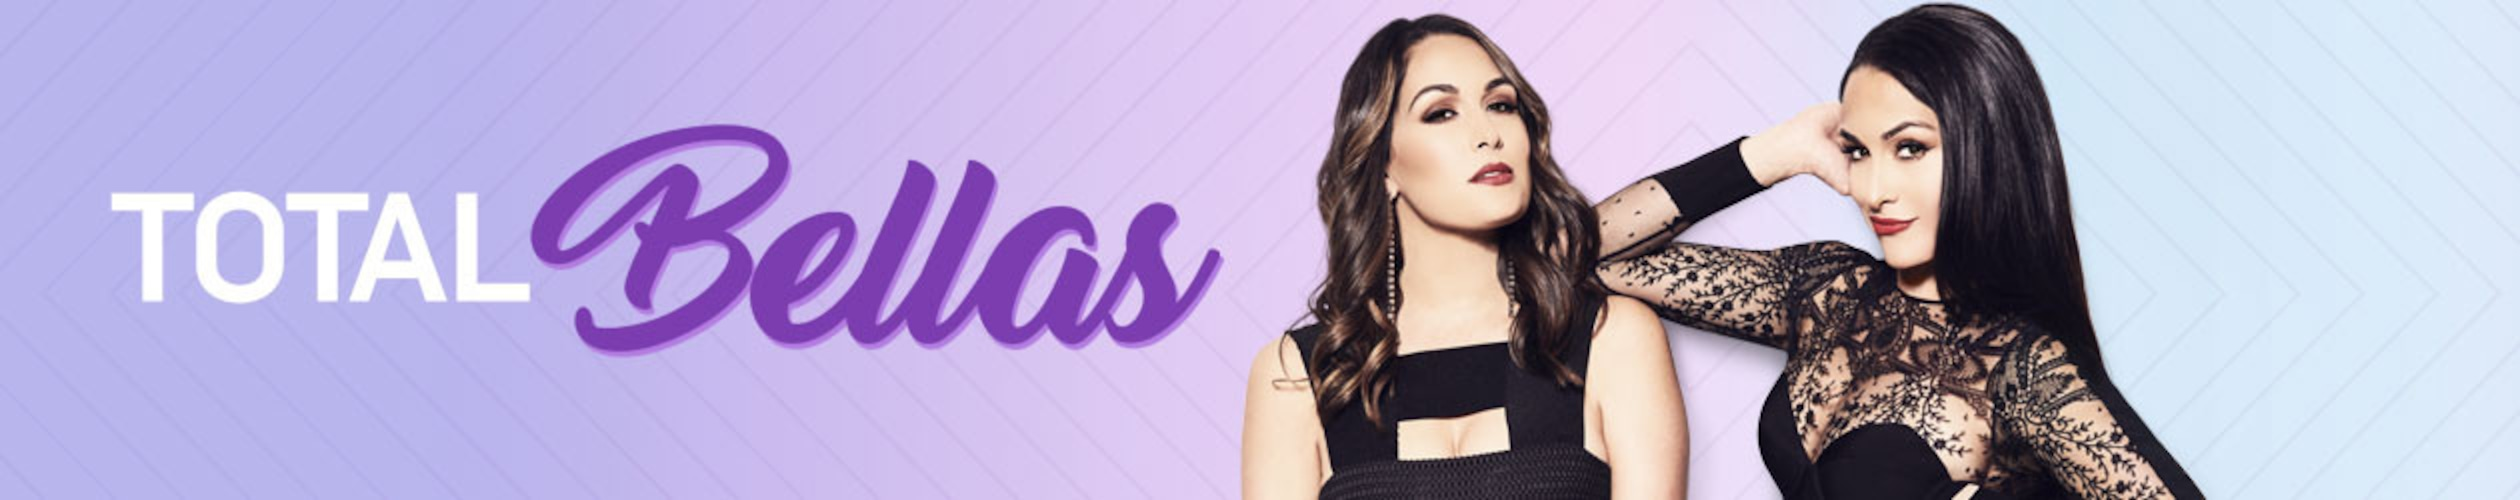 REVISED TOTAL BELLAS S4 SHOW PACKAGE ASSETS